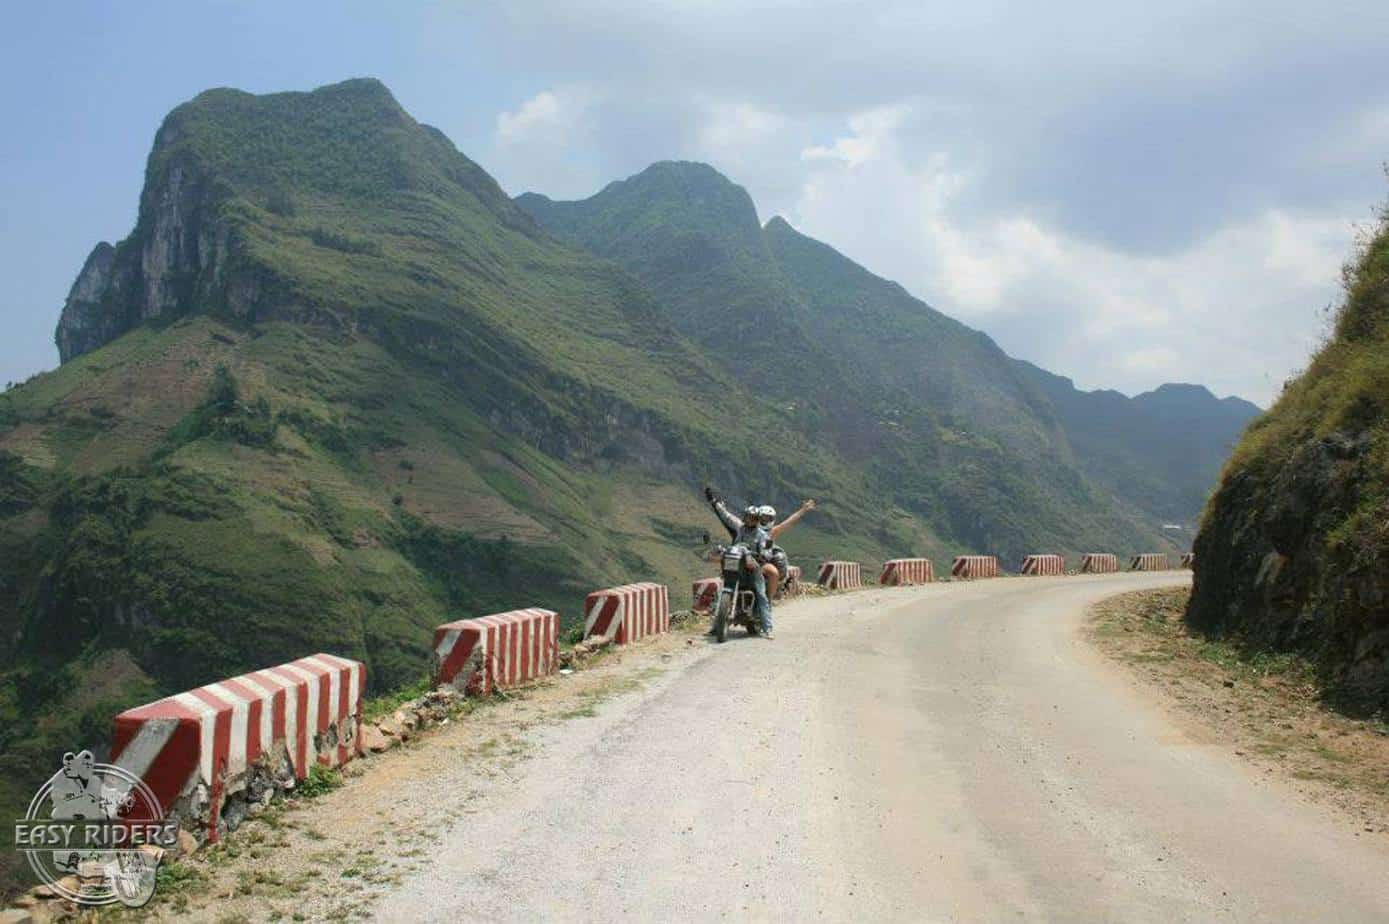 Riding the winding mountain passes